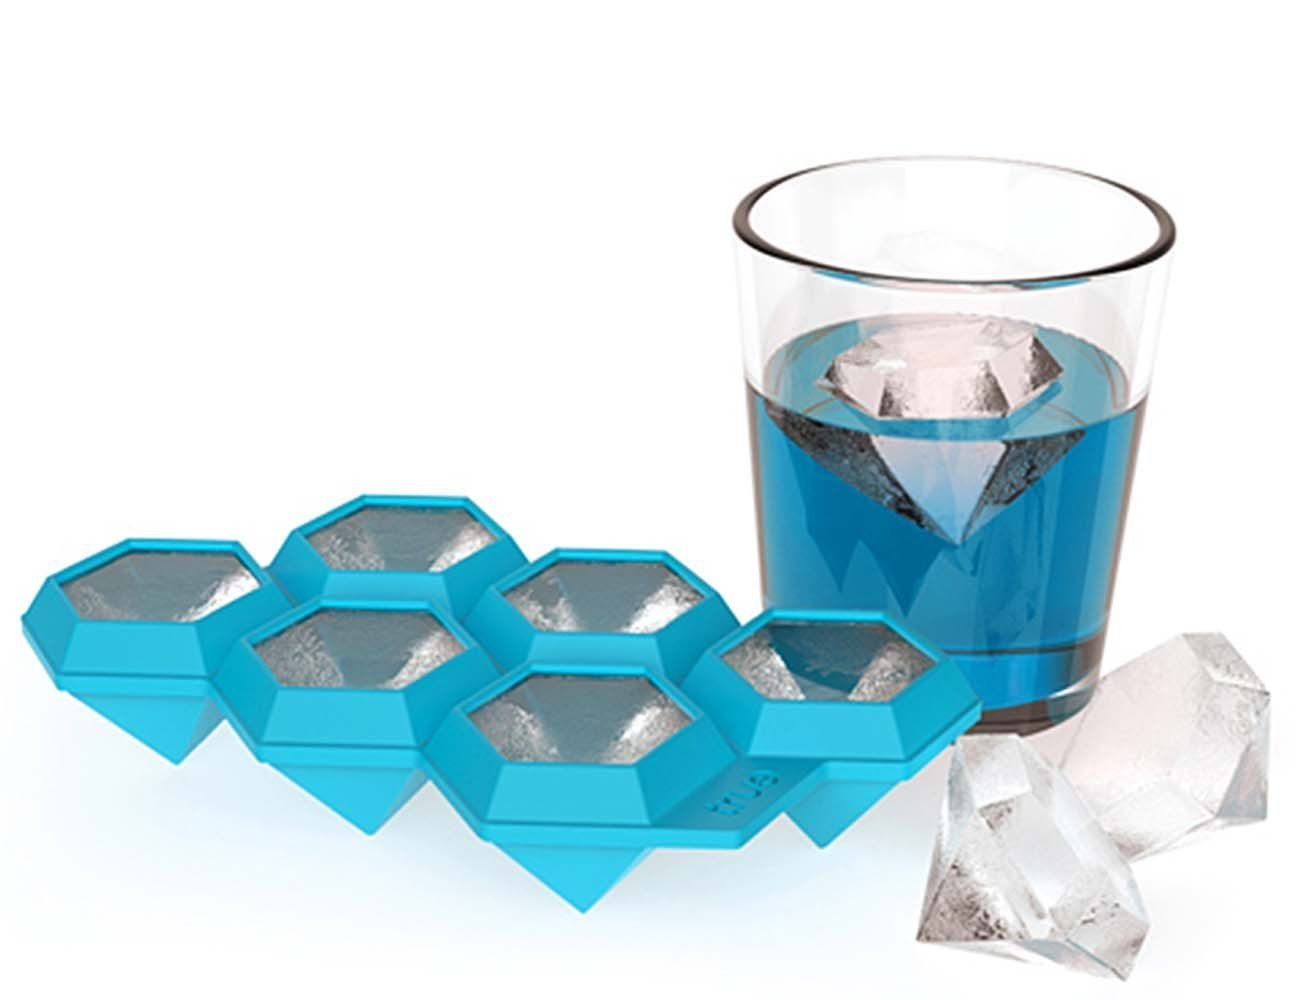 Stay Cool This Summer With Help From A Silicone Ice Mold